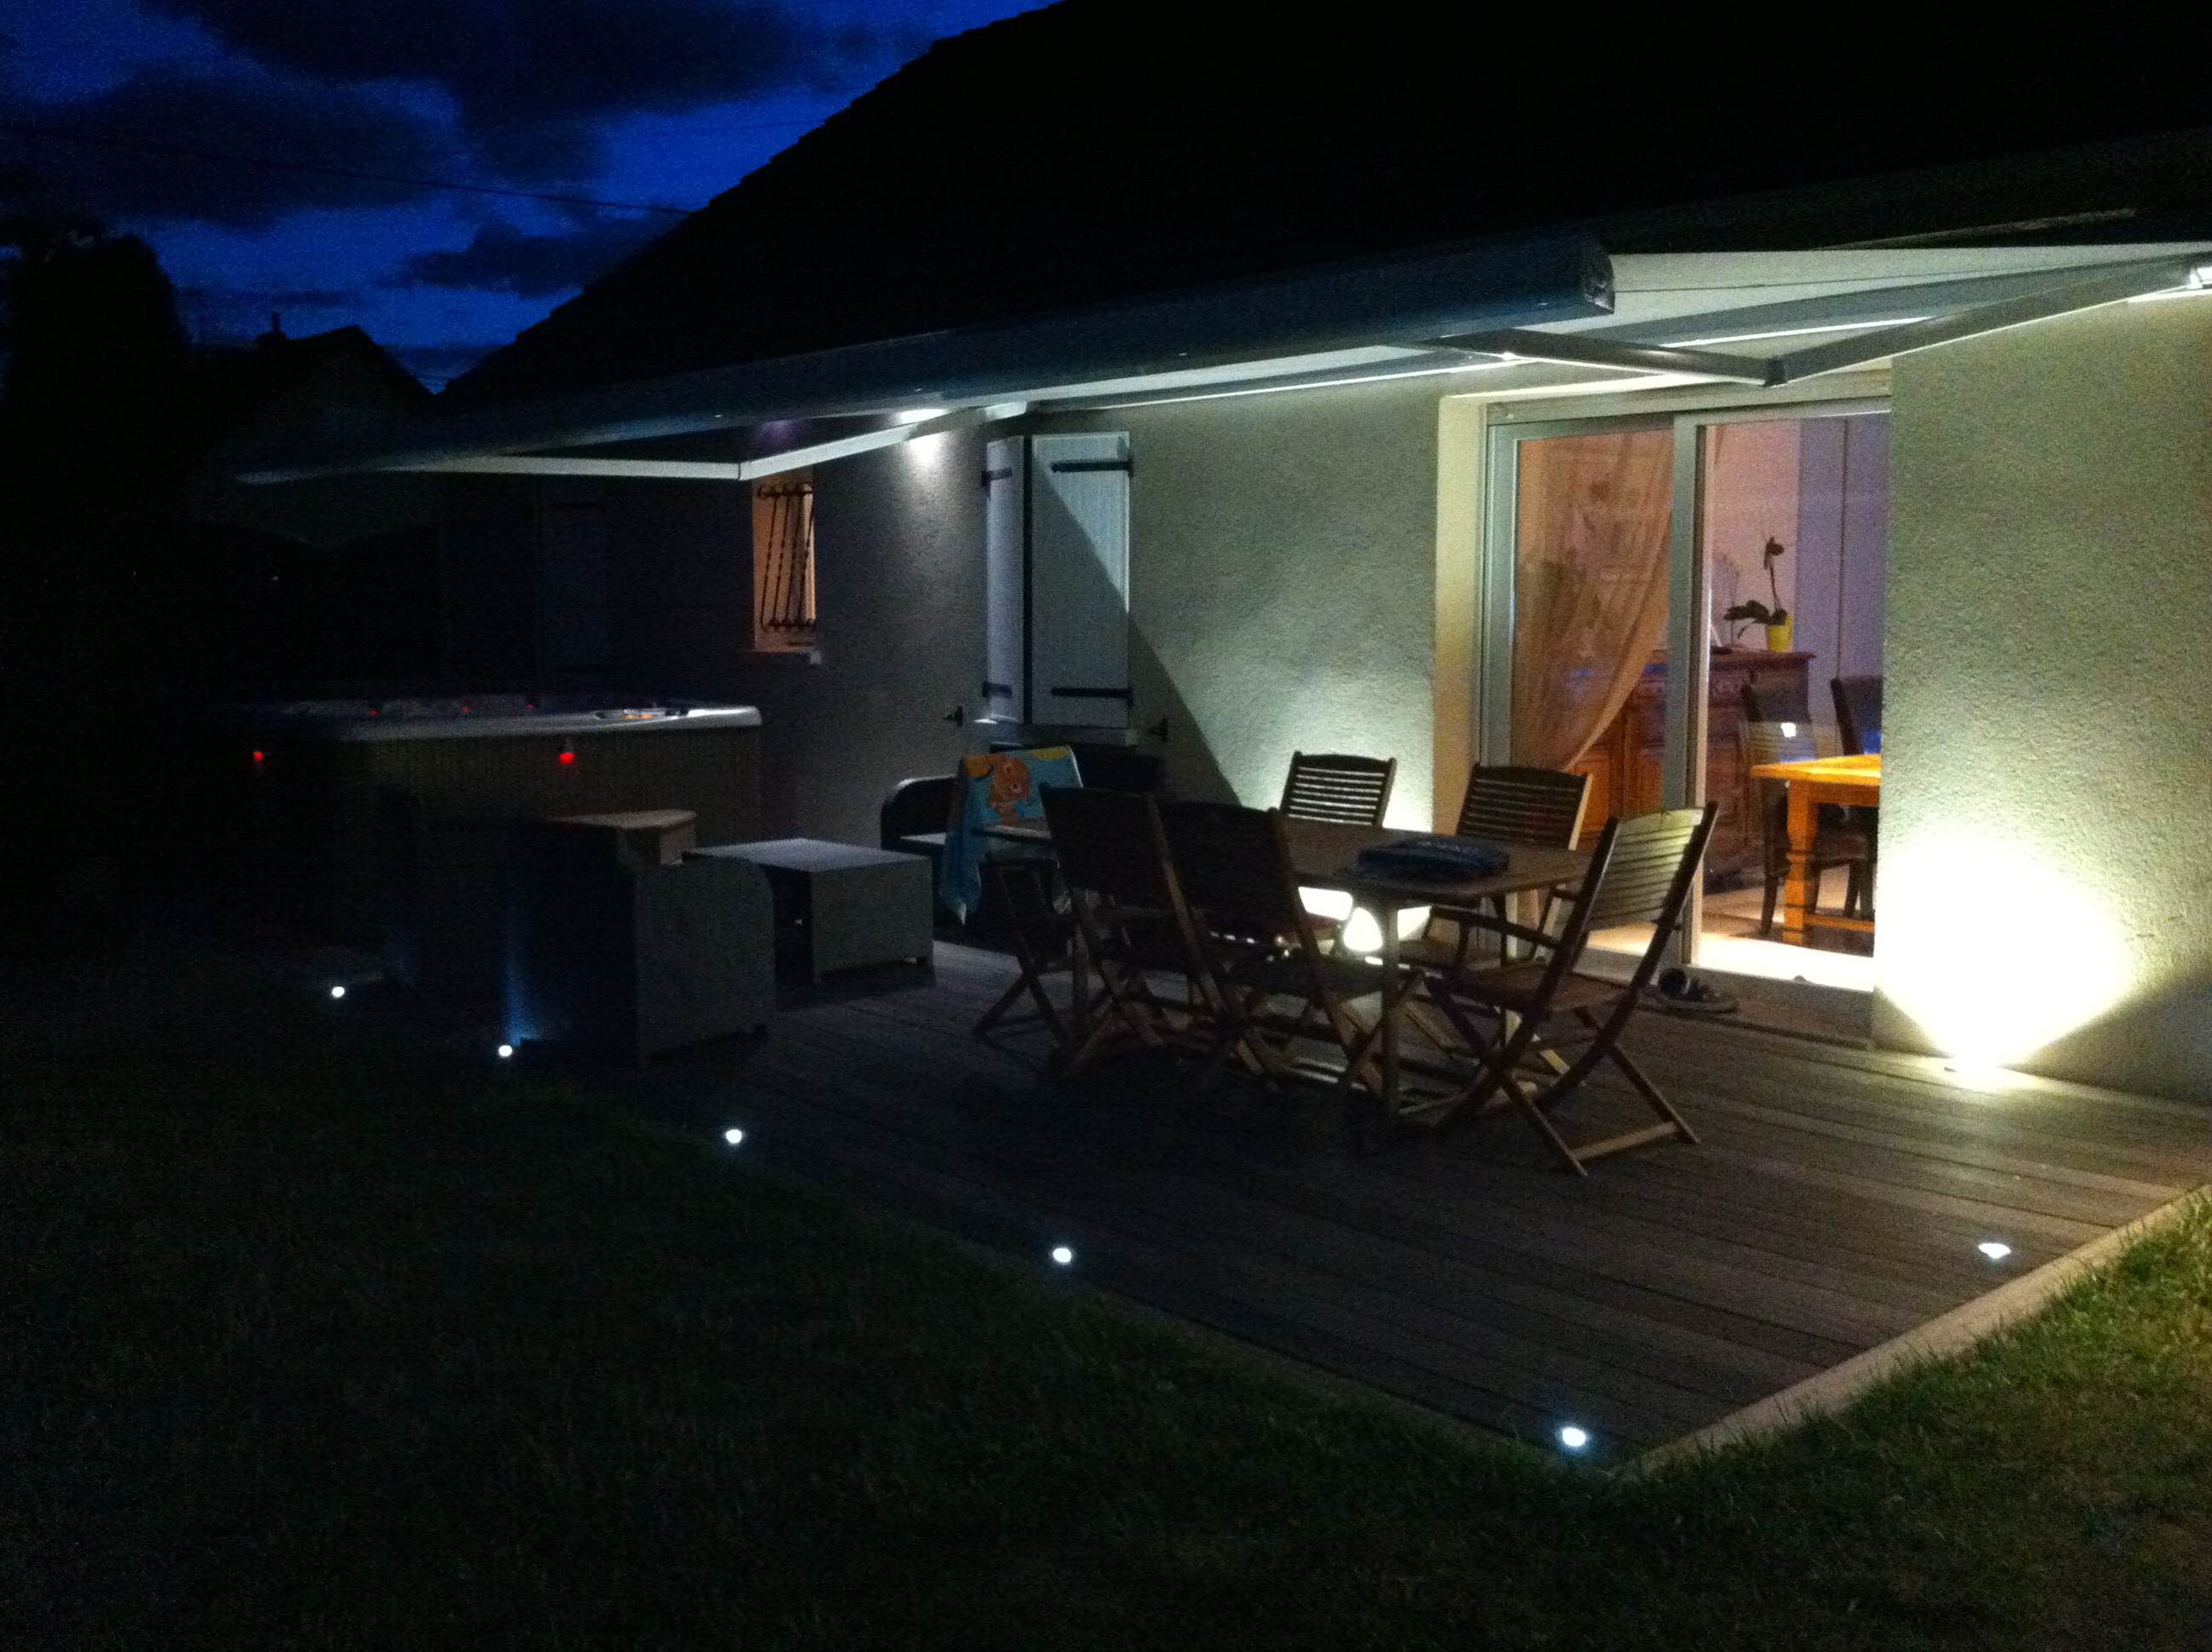 Clairage terrasse led eclairage ext rieur for Eclairage exterieur led terrasse